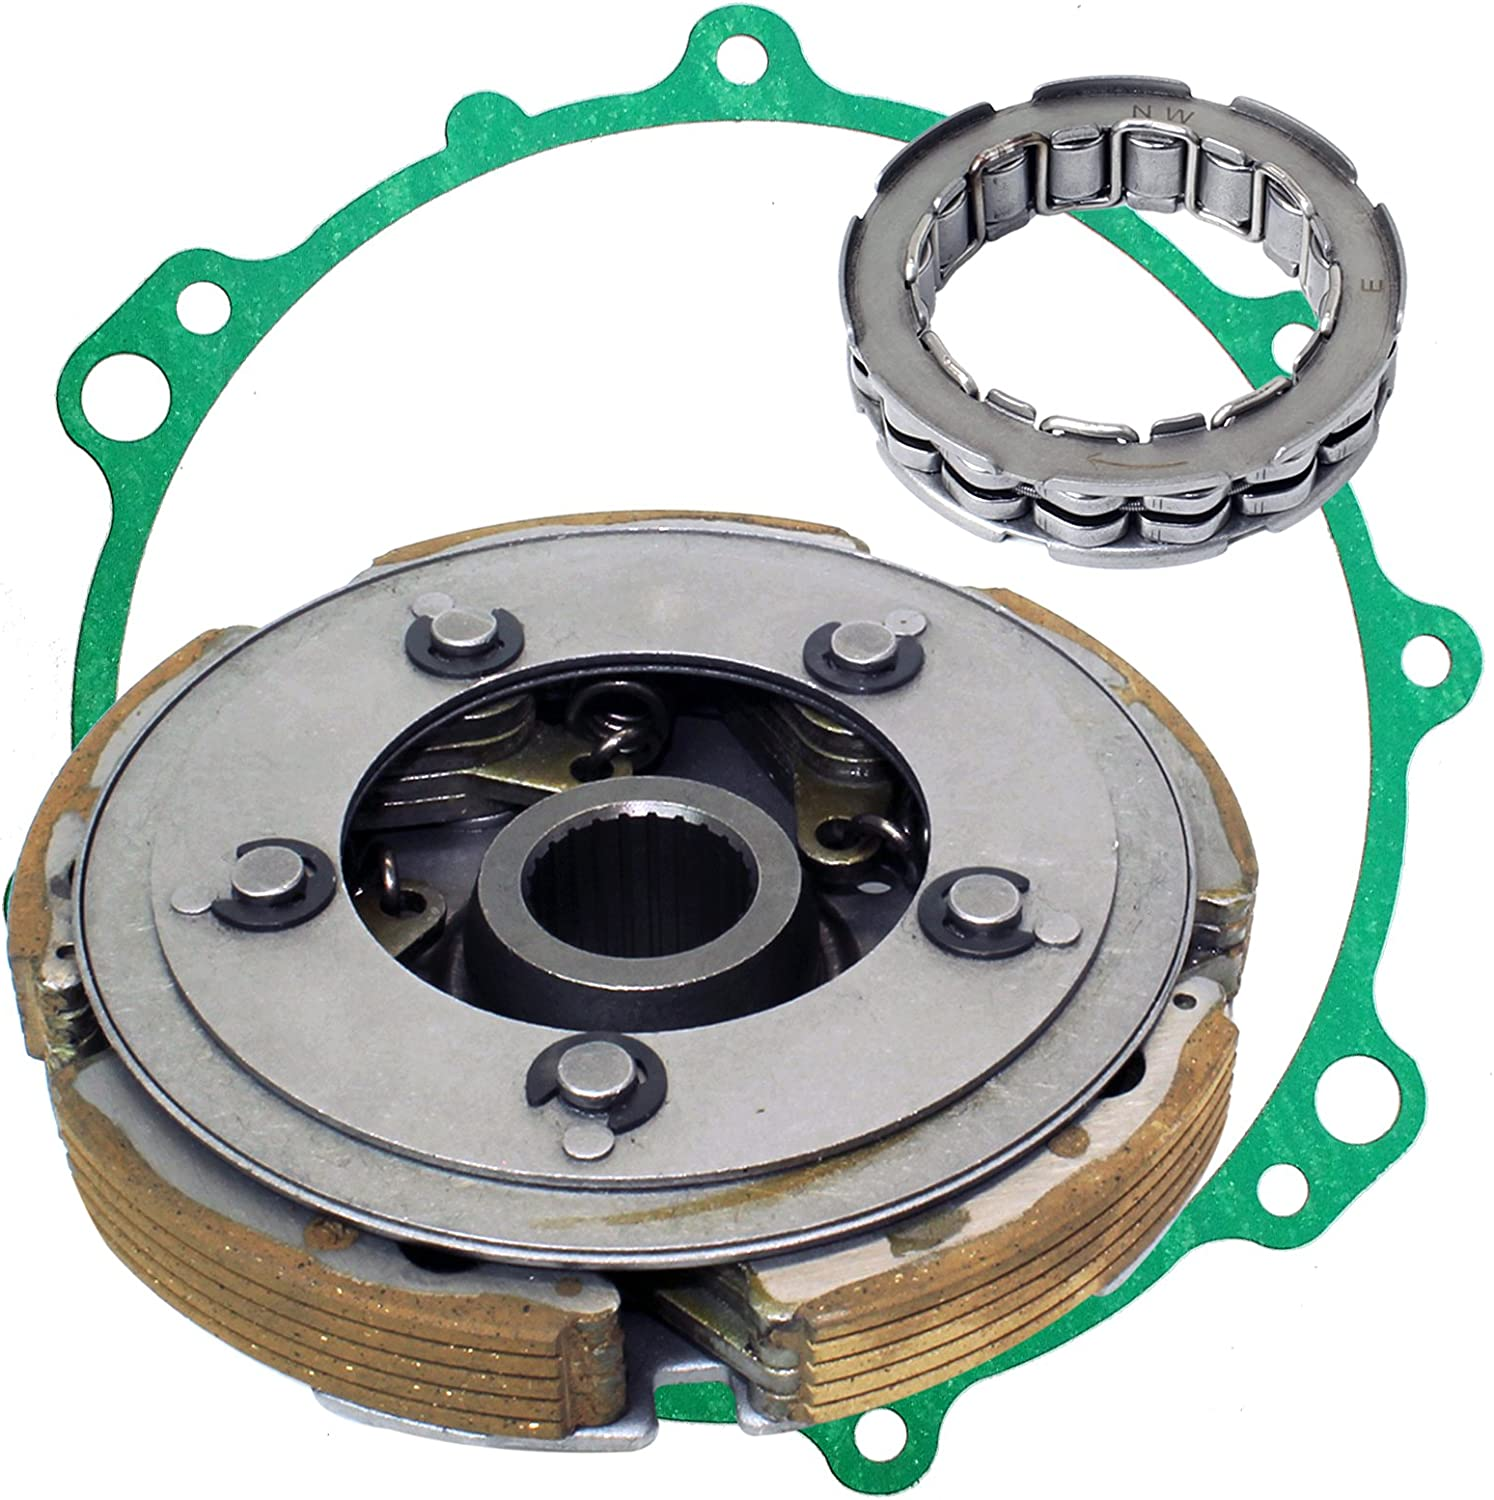 Caltric Wet Clutch Carrier And One Way Bearing for Yamaha Grizzly 450 Yfm450 2007-2014